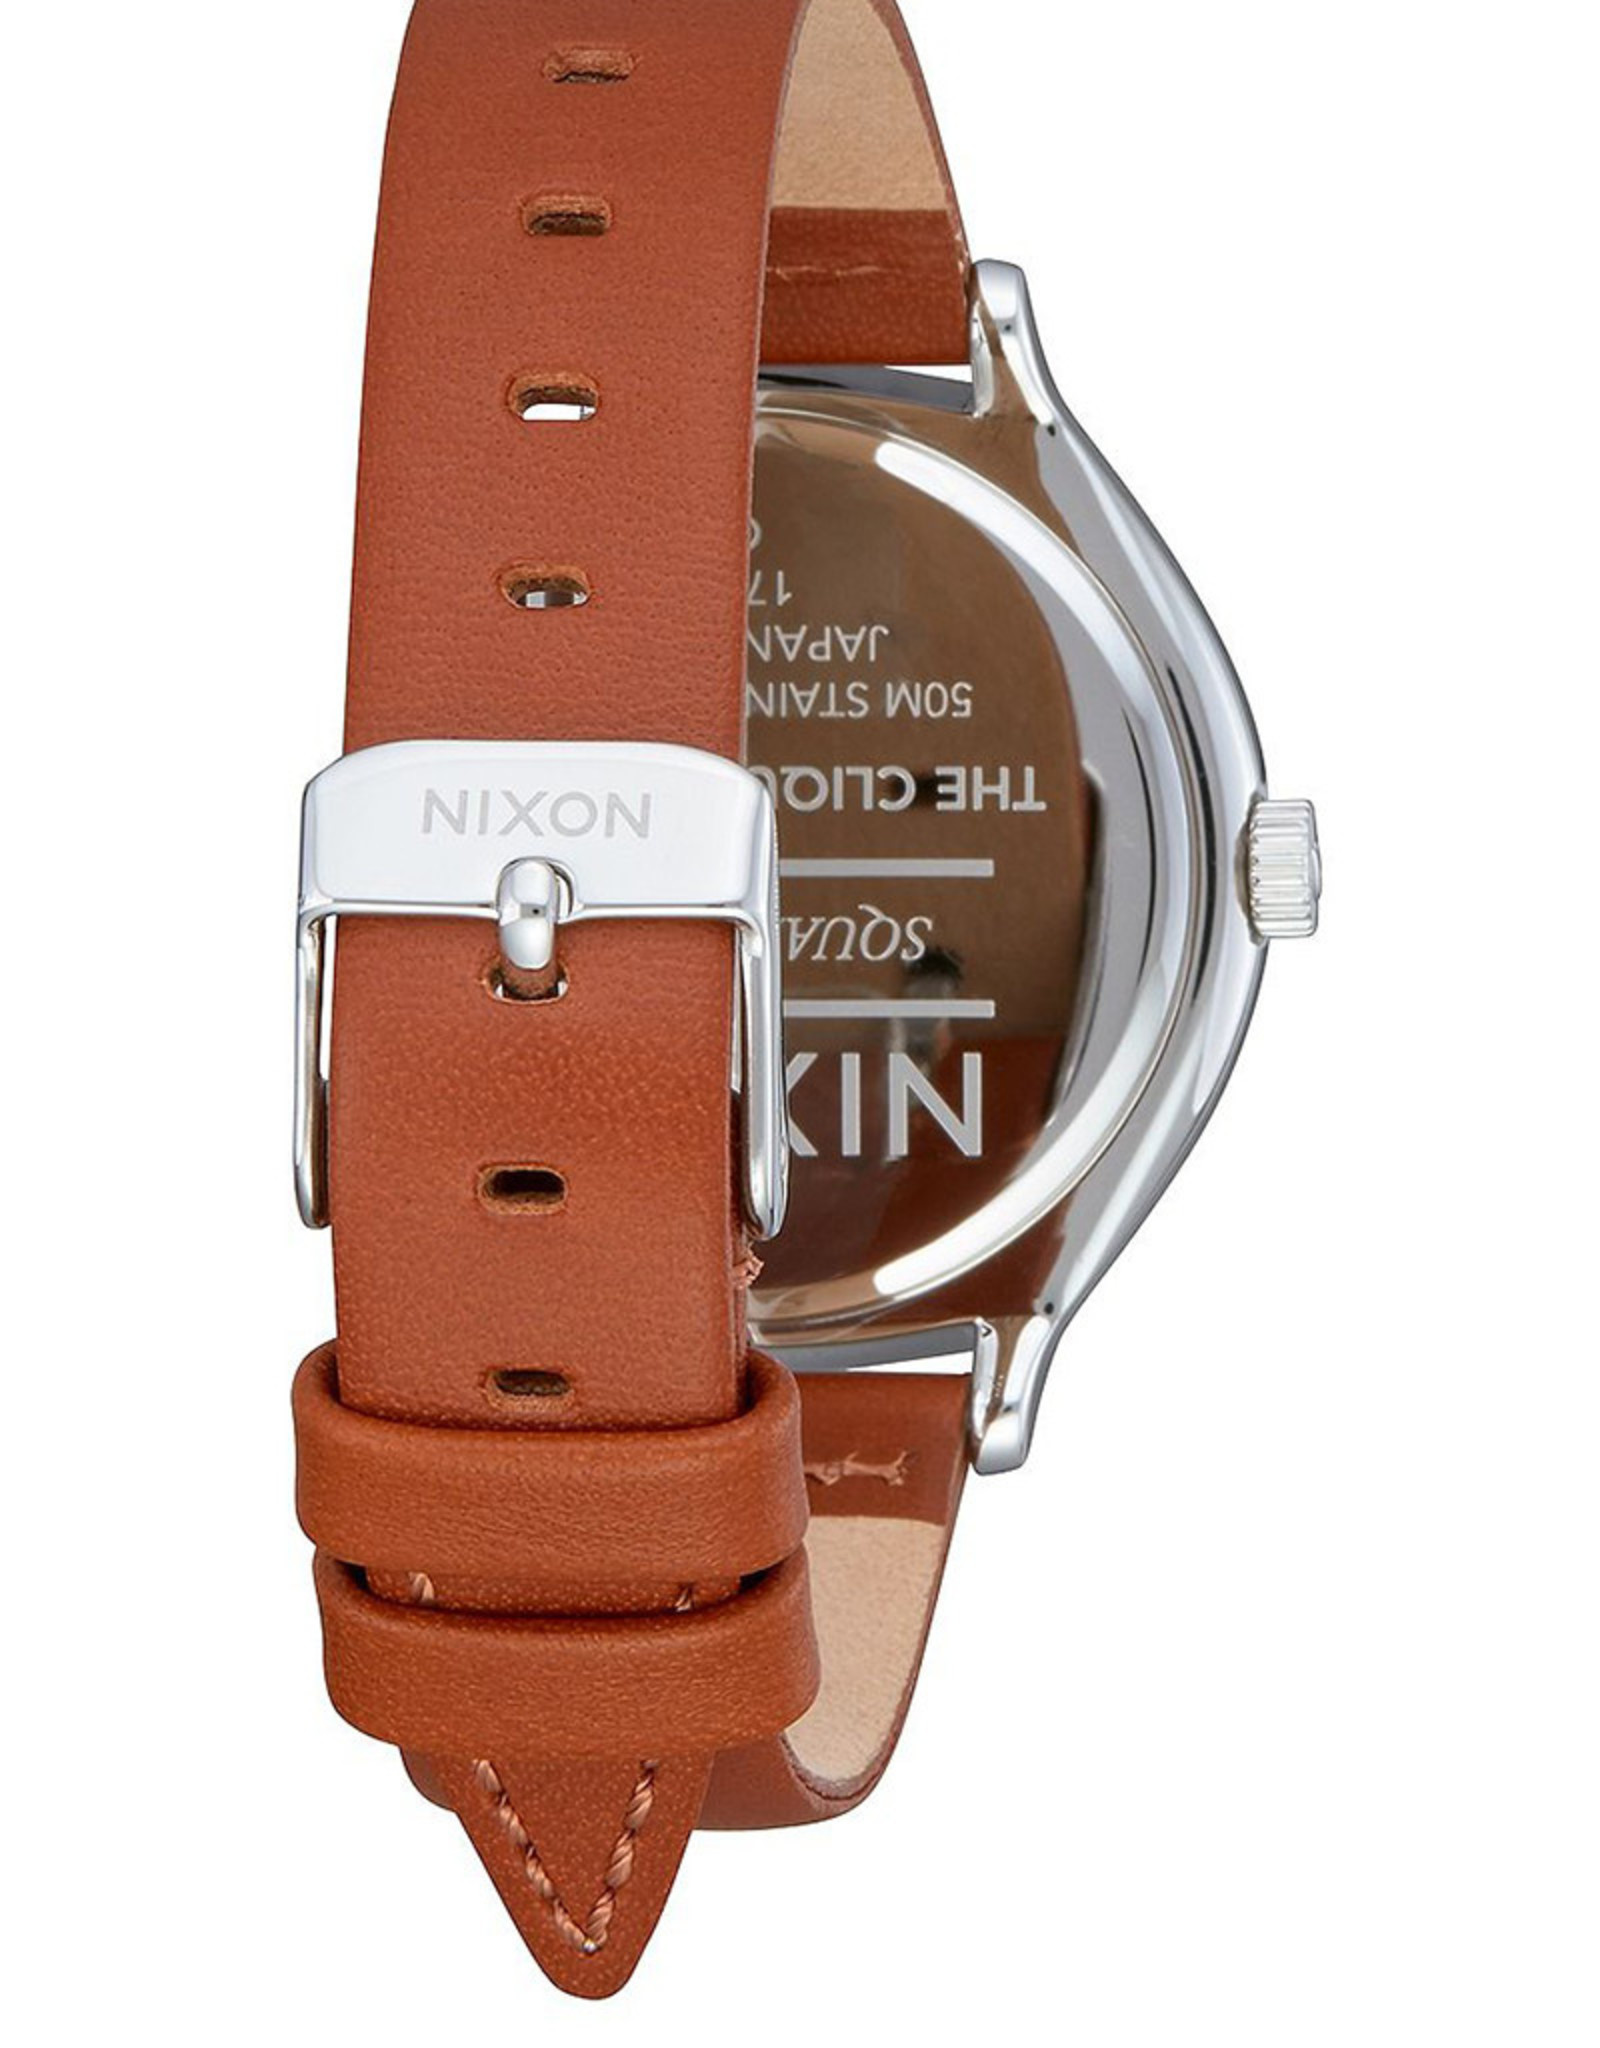 NIXON Clique Leather Watch